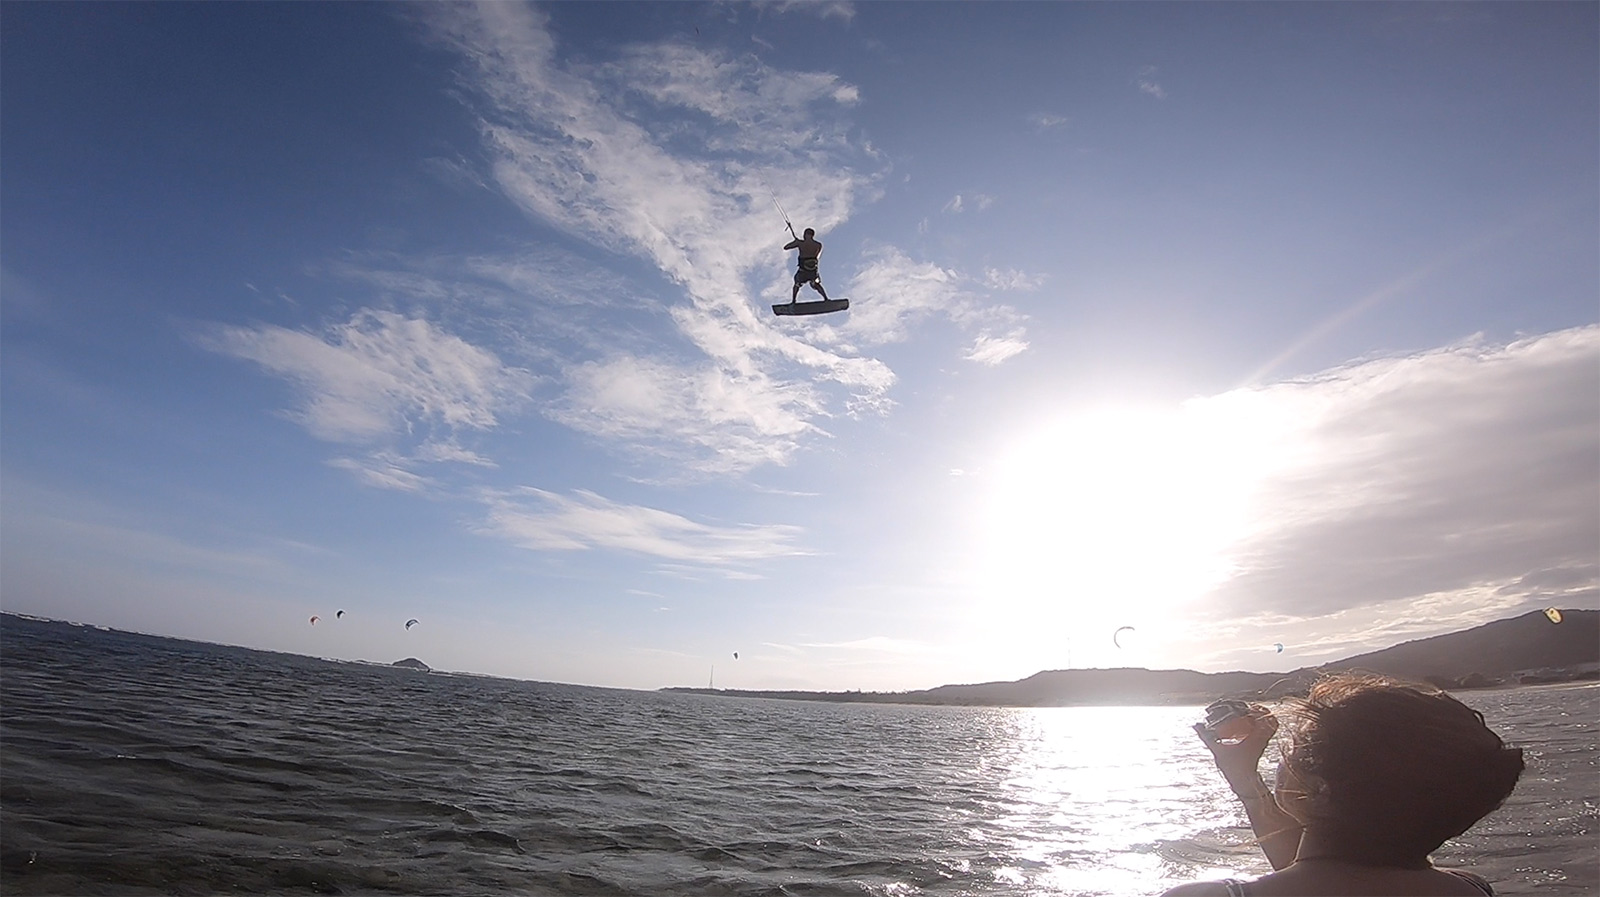 Kitesurf flying high while being filmed. My Hoa lagoon, Phan Rang